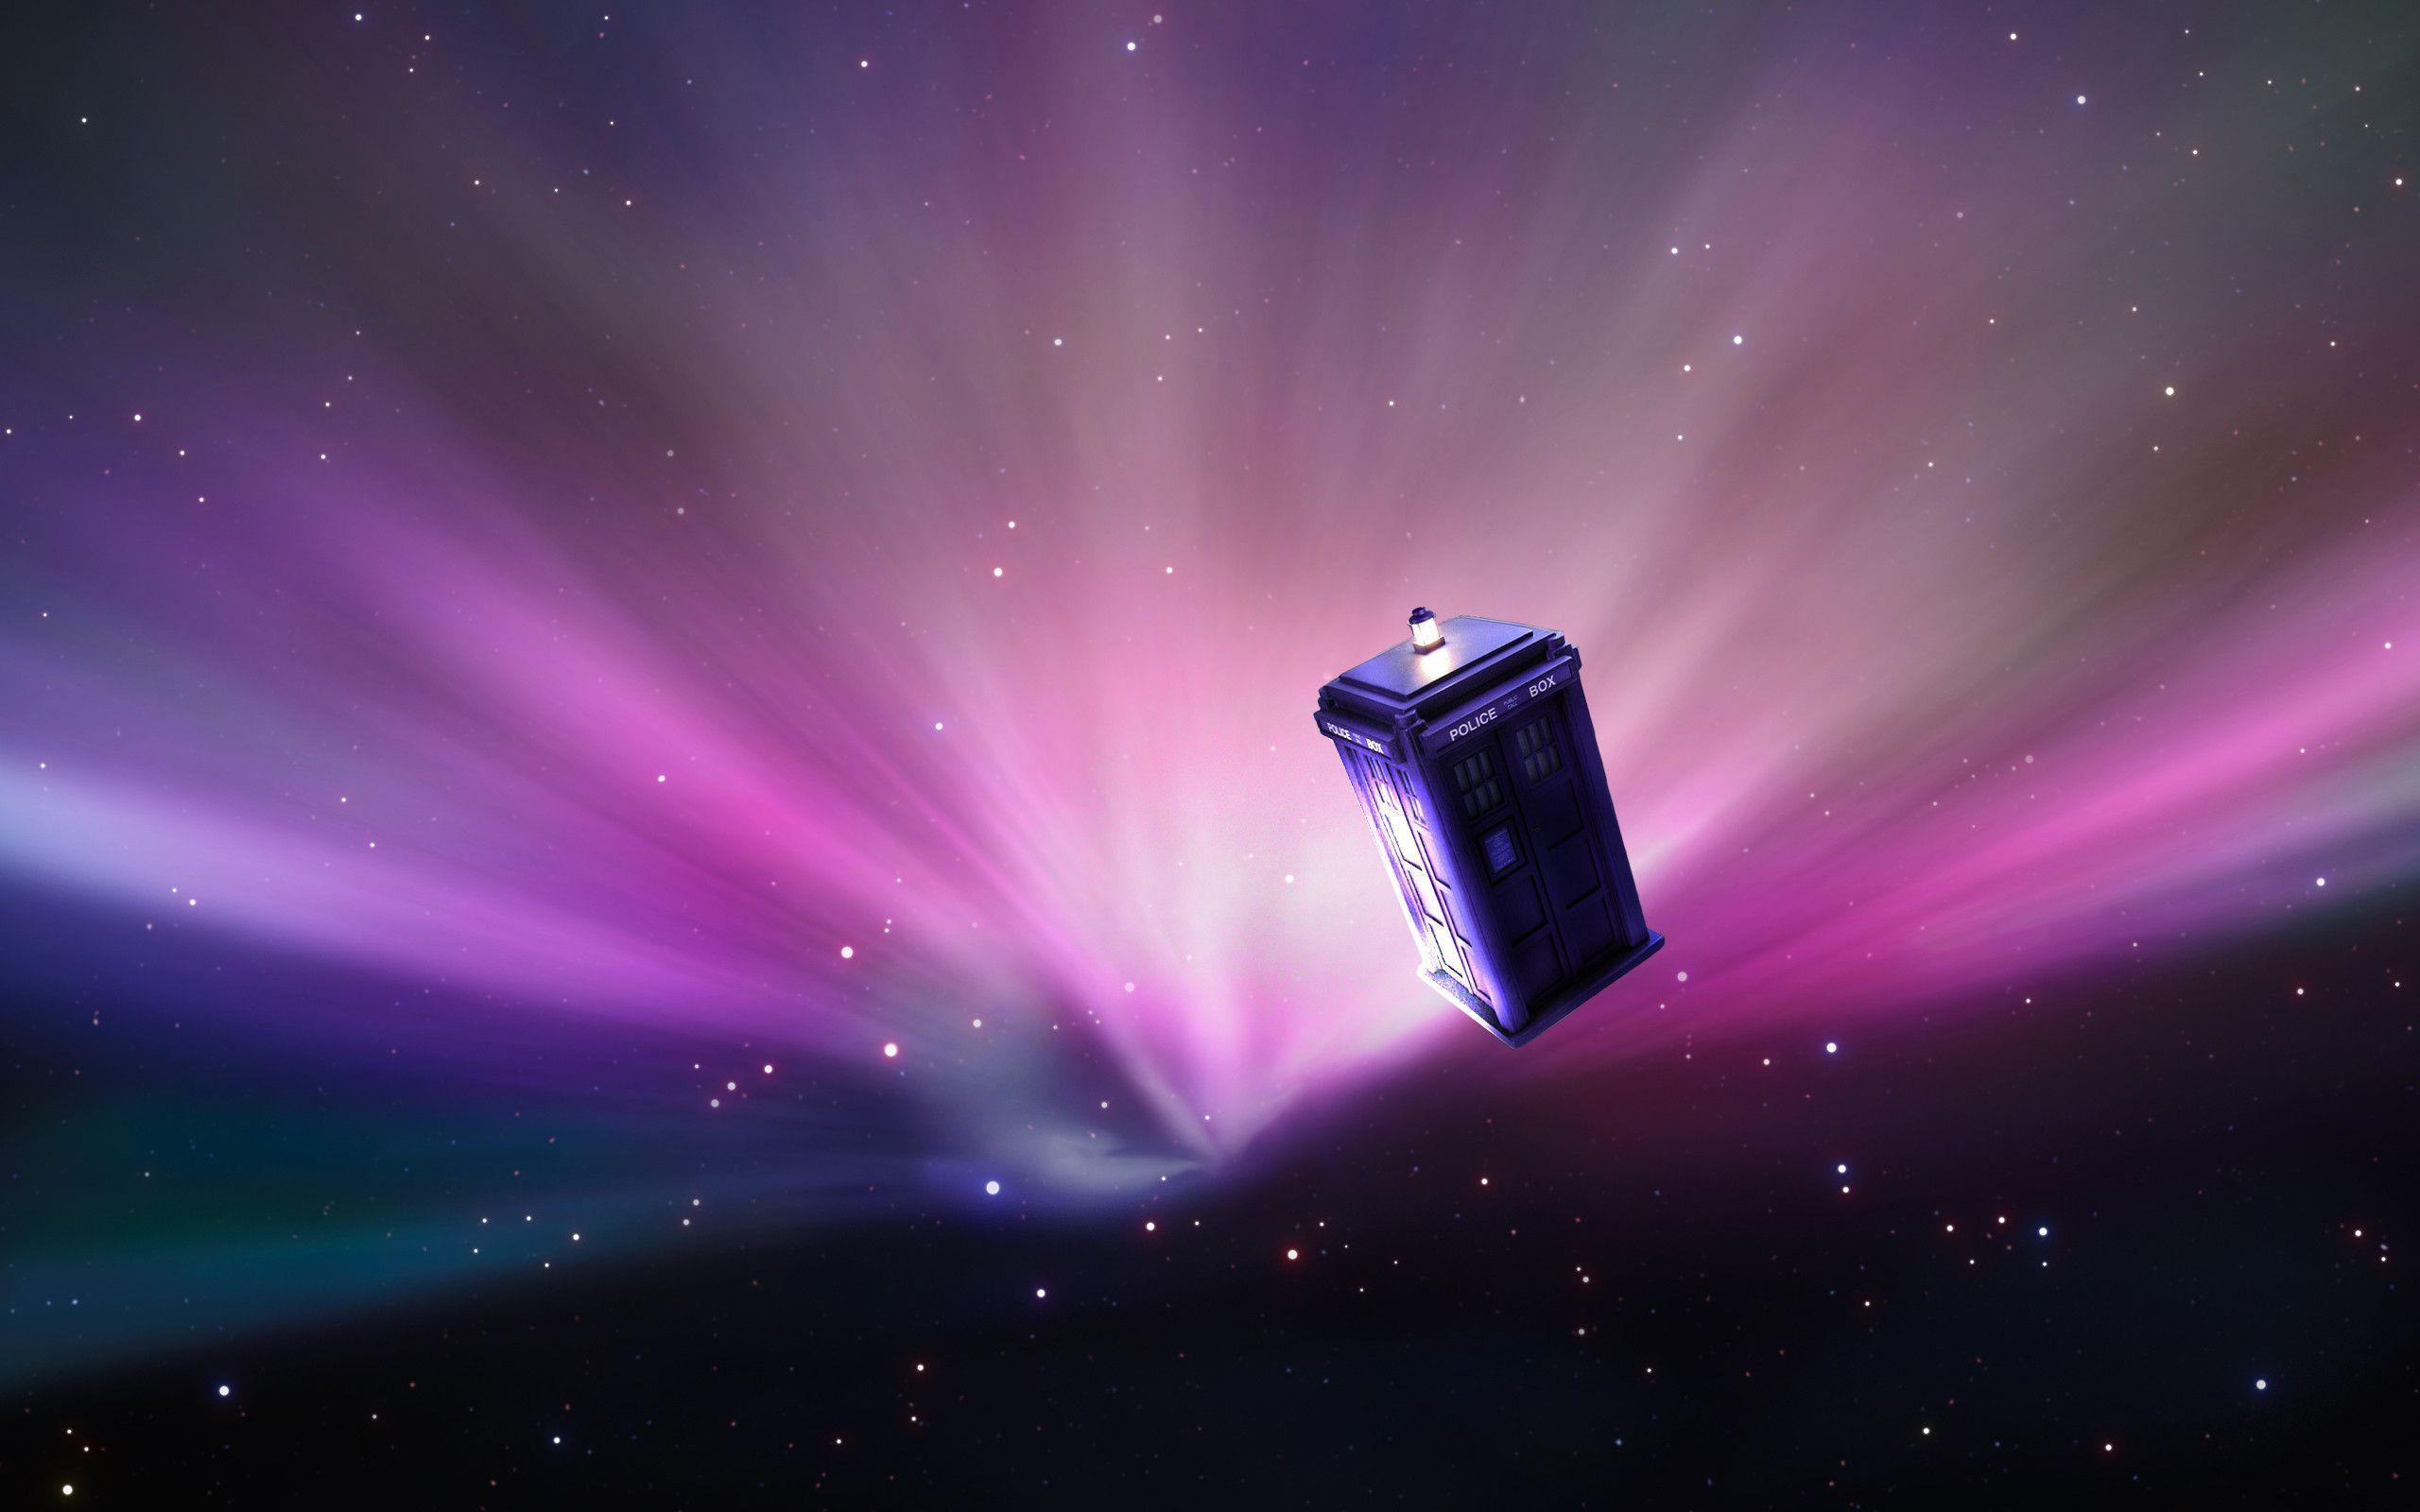 yiqe4L74T doctor who wallpapers HD free wallpapers backgrounds